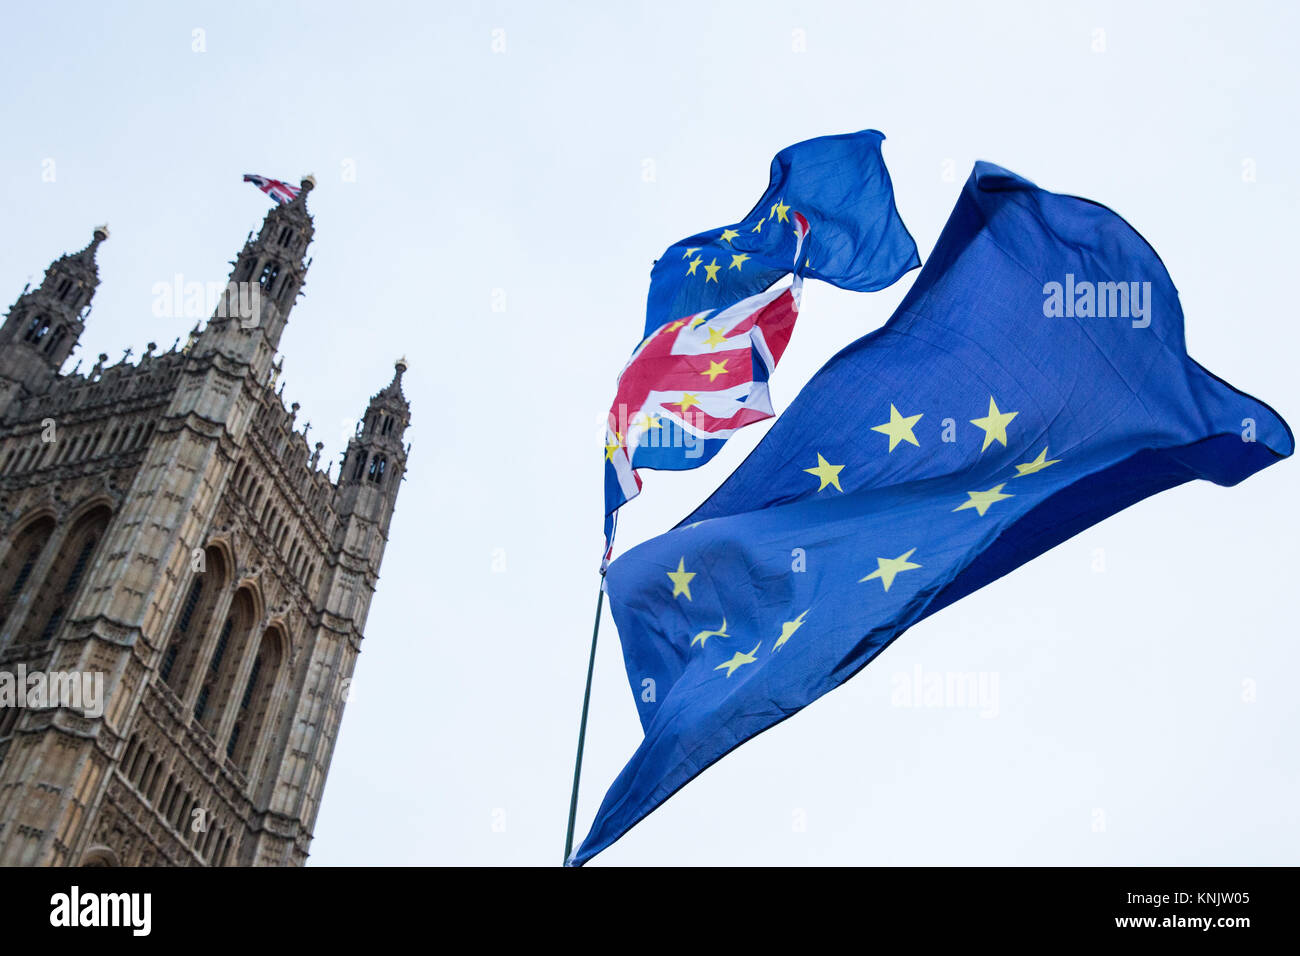 London, UK. 12th Dec, 2017. Anti-Brexit protesters wave European Union flags outside Parliament. Credit: Mark Kerrison/Alamy - Stock Image